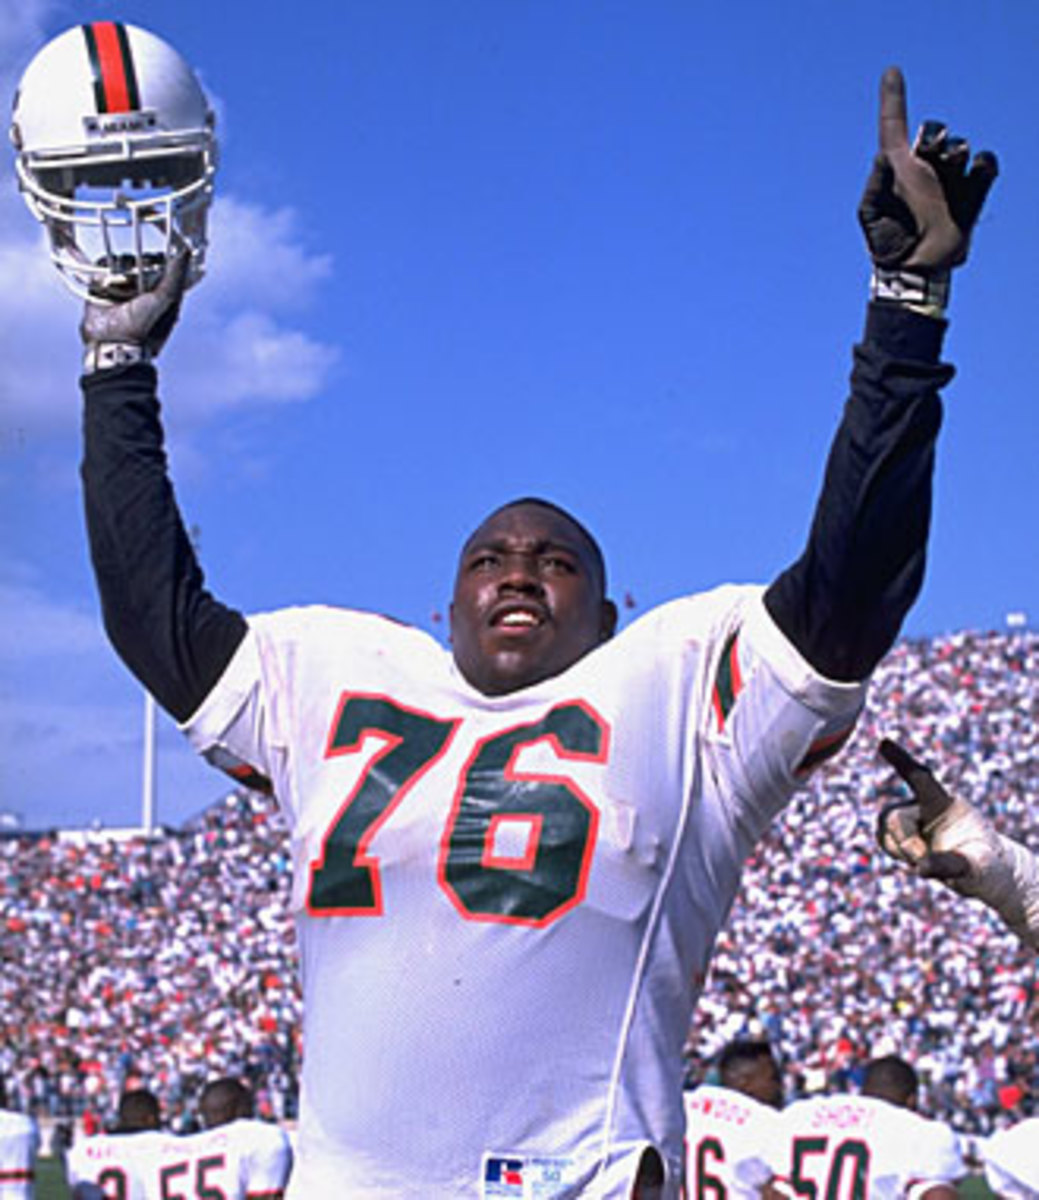 Warren Sapp was one of many Hurricanes whose off-field troubles tarnished the program's image.